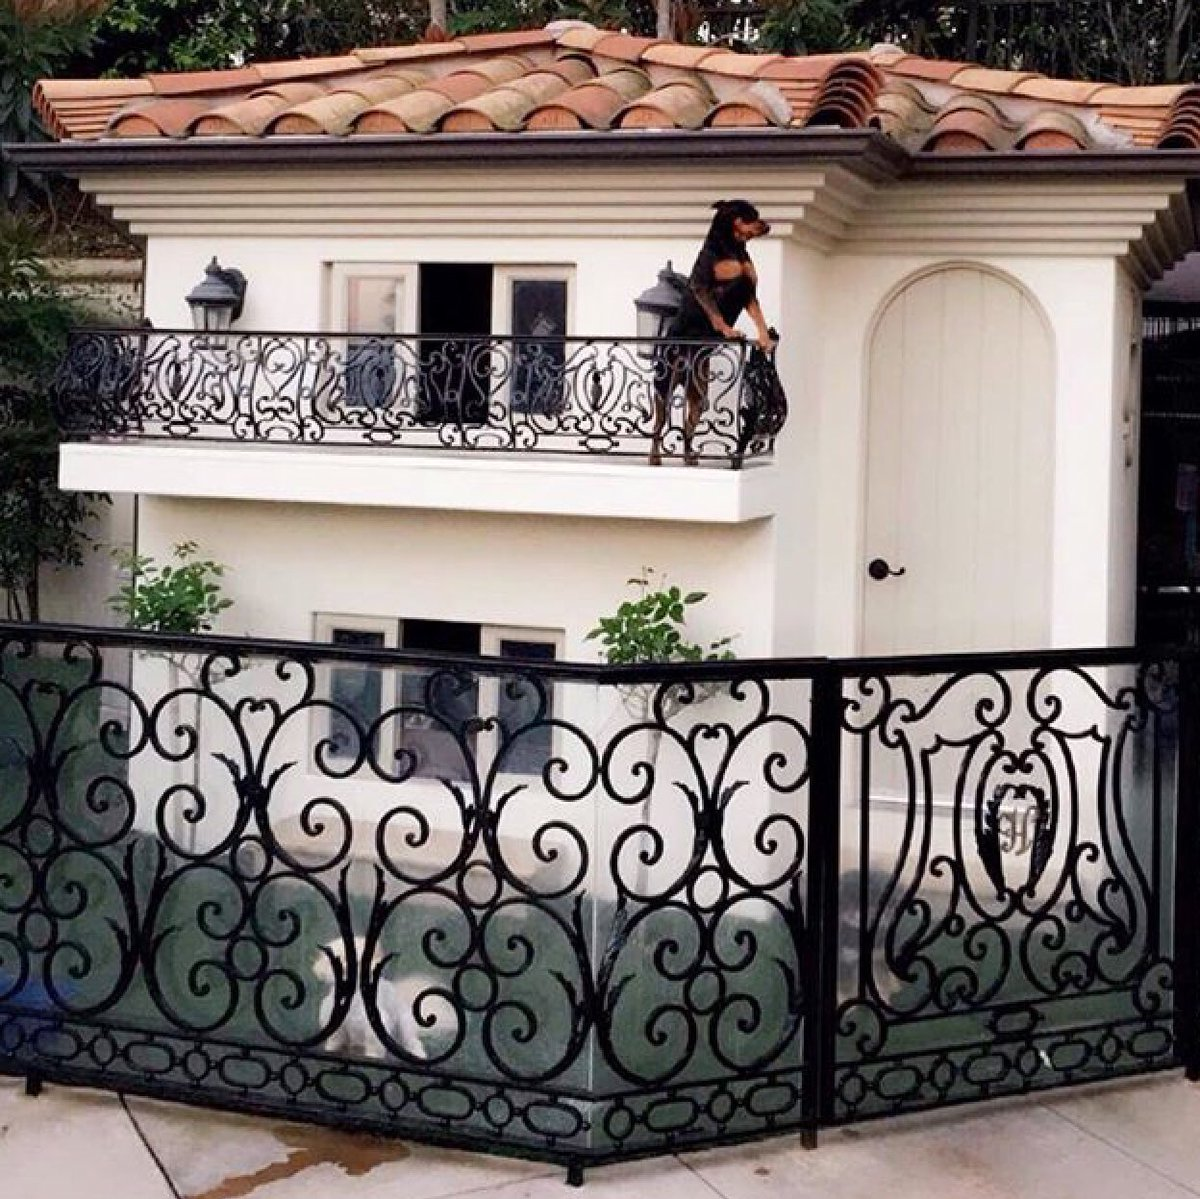 My dogs live in this two-story doggy mansion that has air conditioning, heating, designer furniture, and a chandelier. Loves it